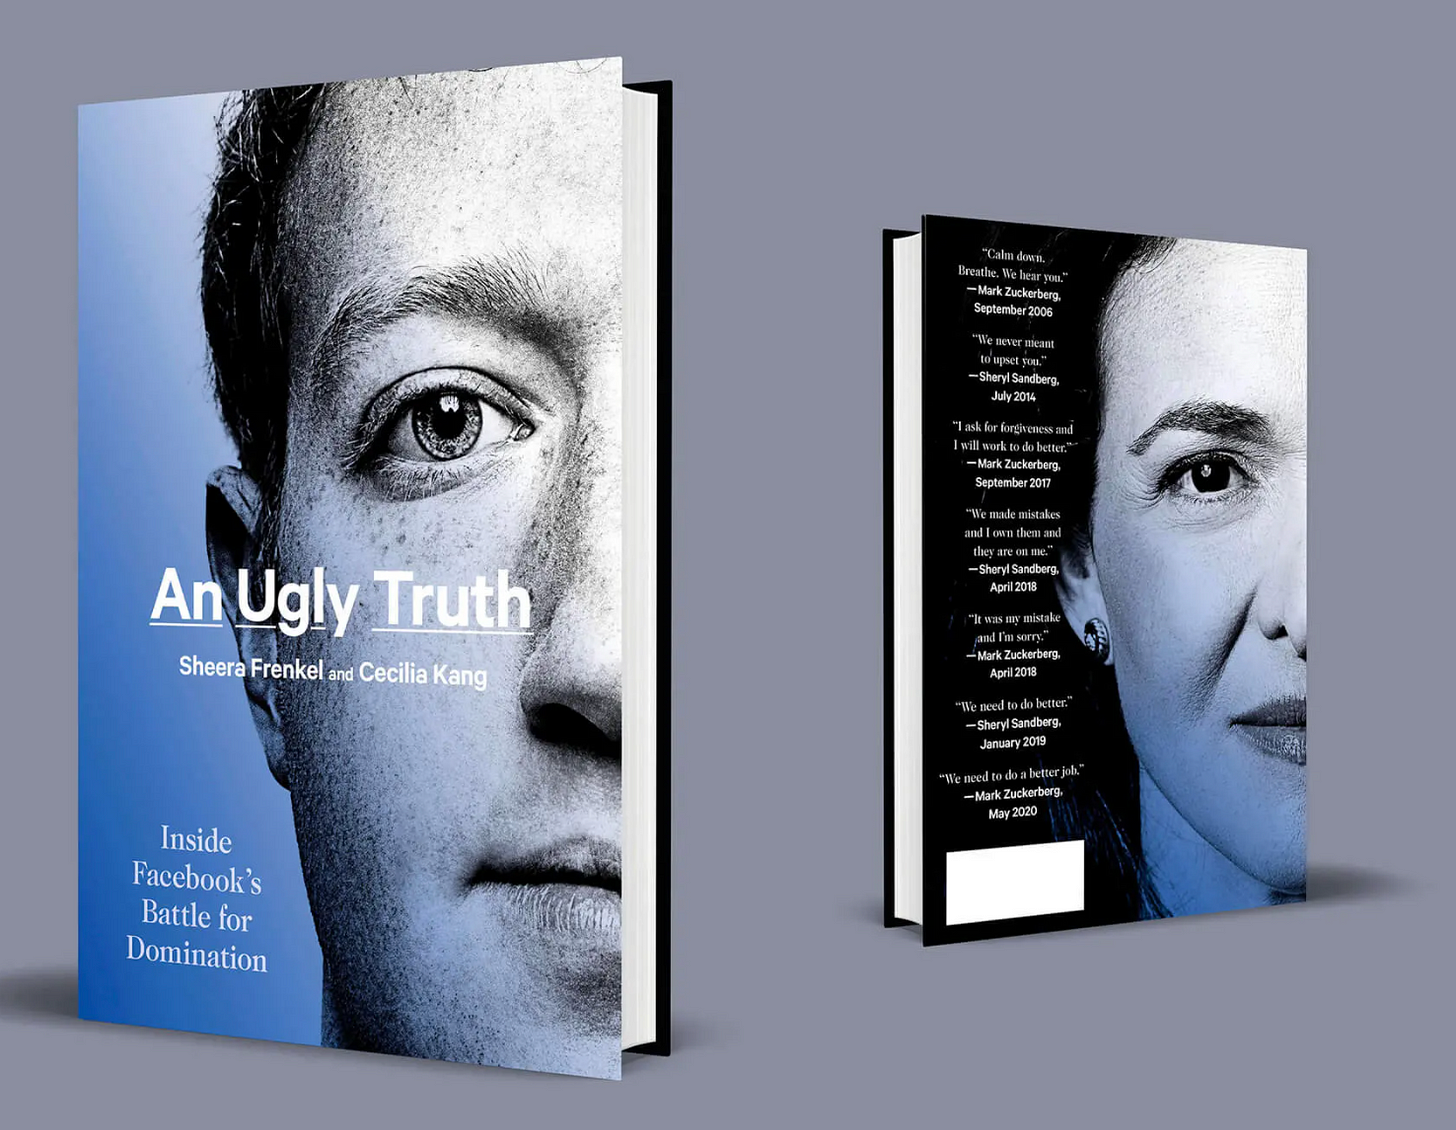 An Ugly Truth (Harper Collins)